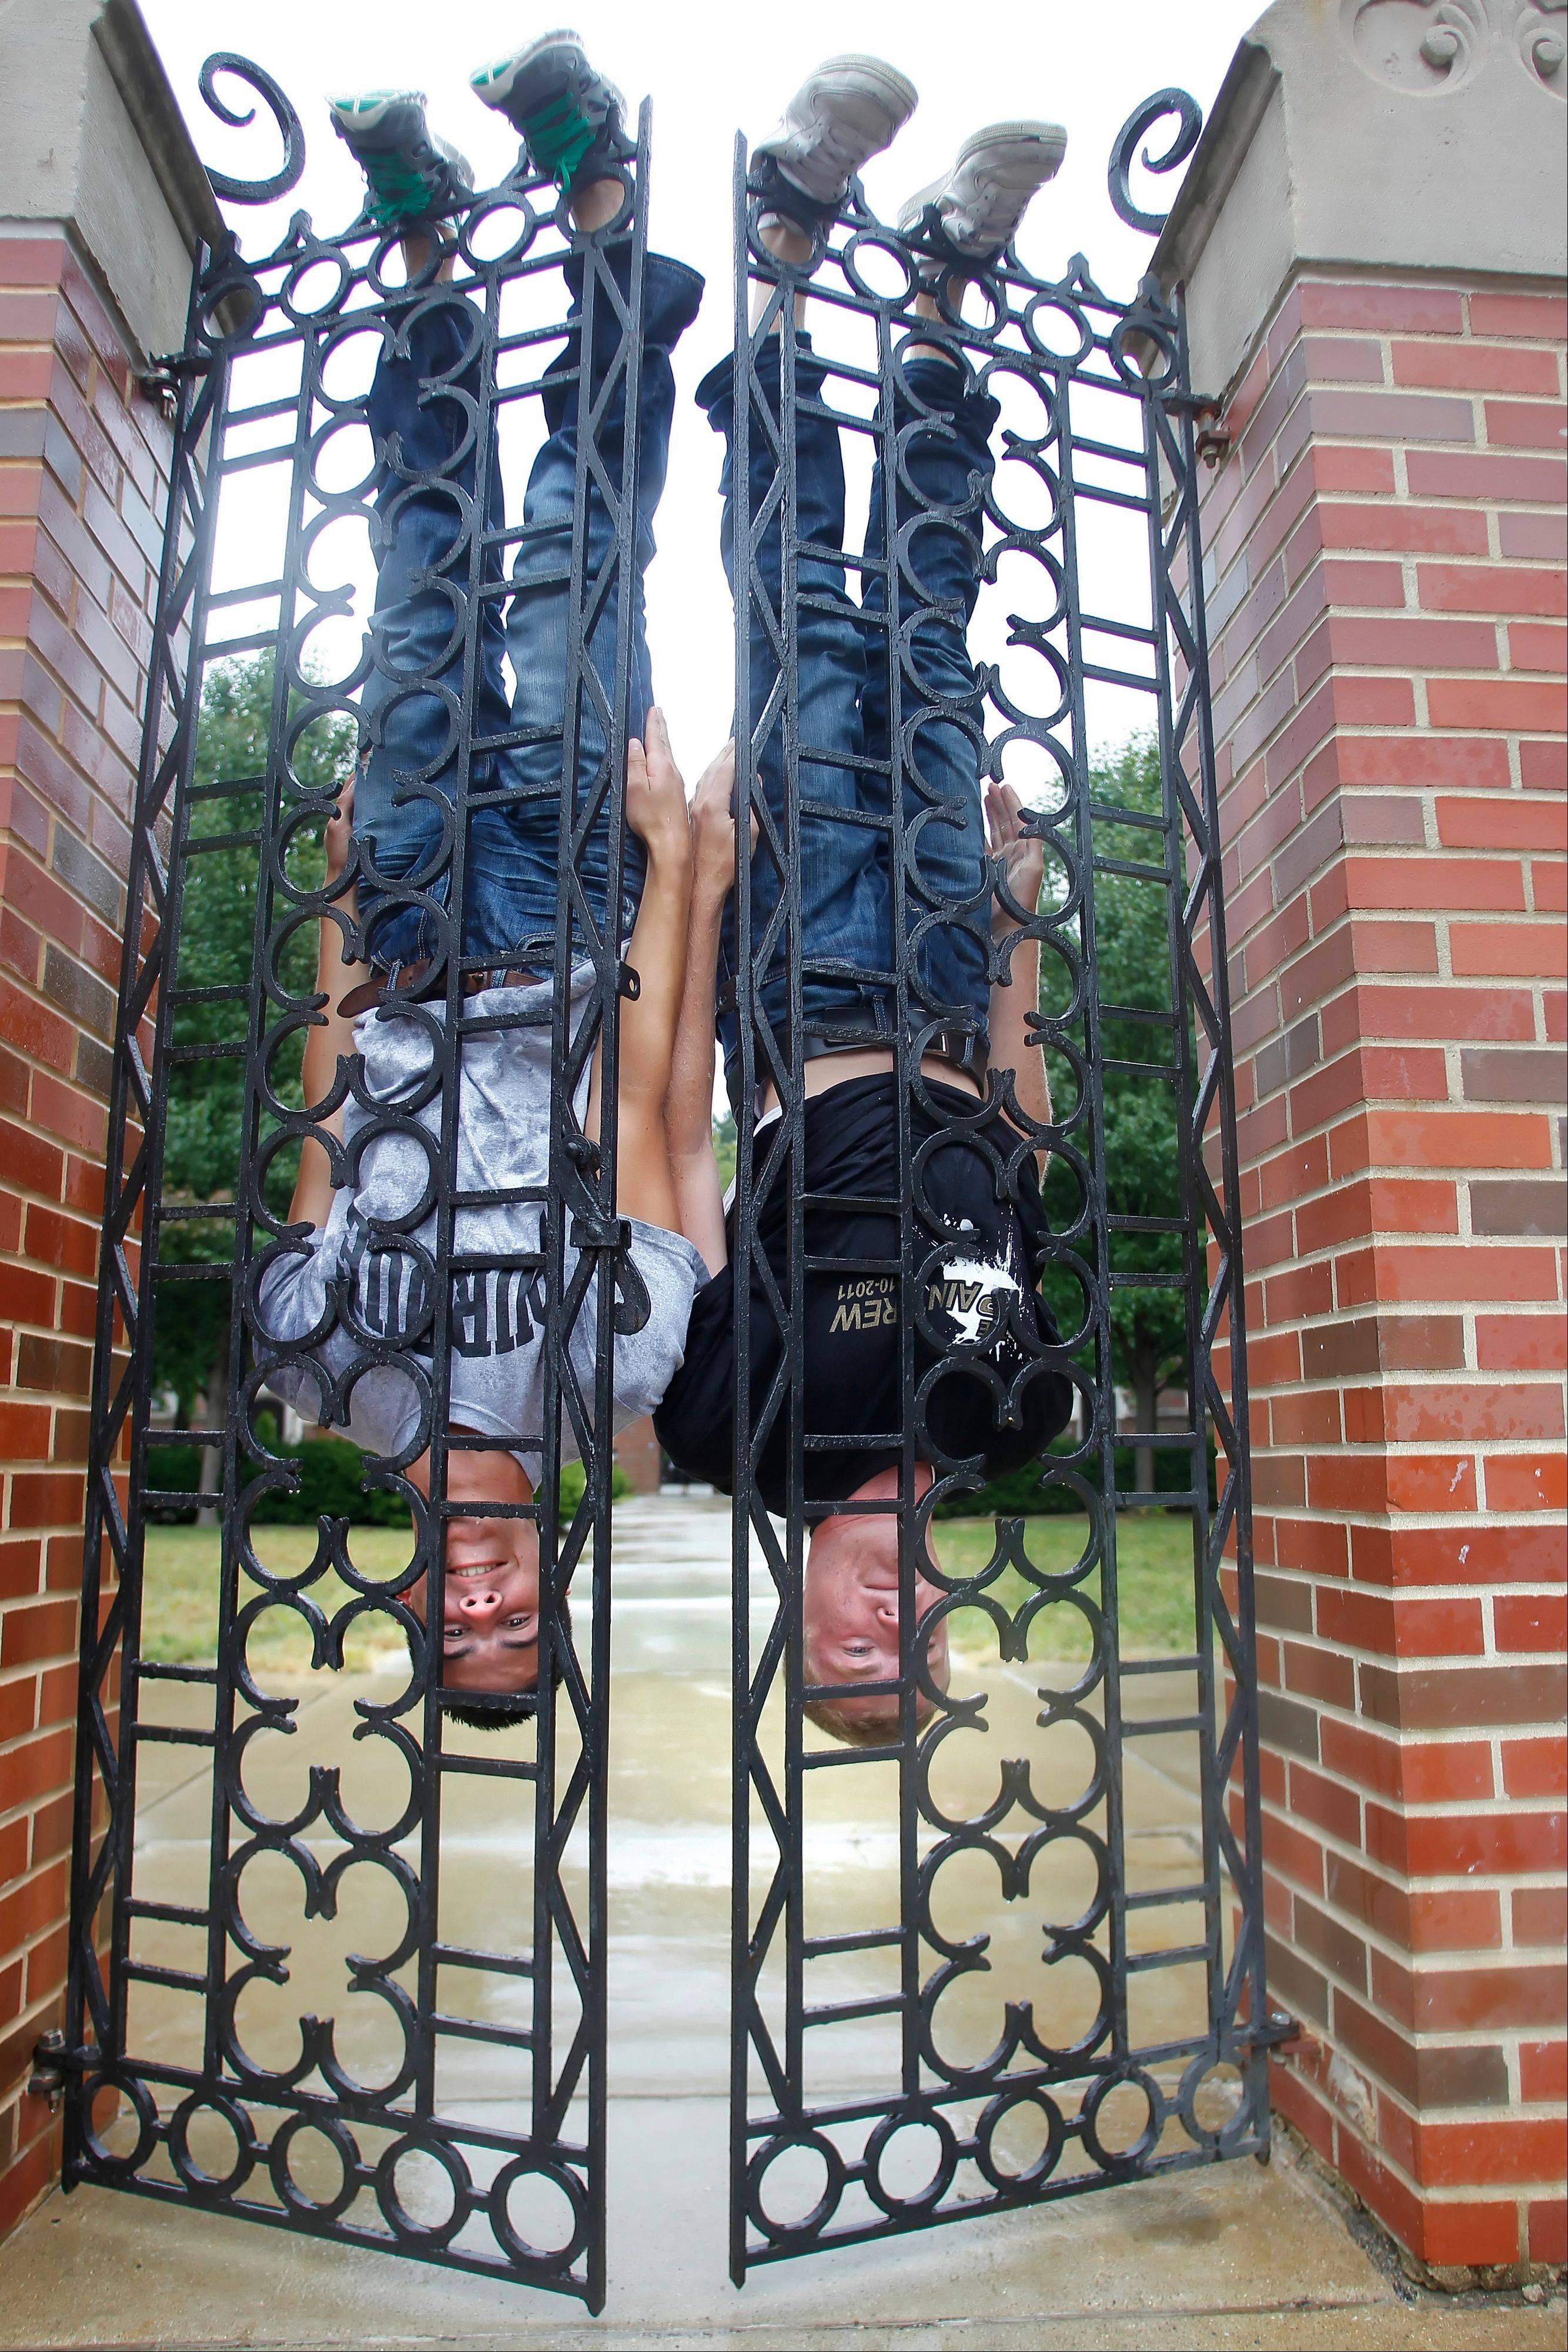 "Ben Lins, left, and Chris Ganz hang upside down on wrought iron gates Thursday at Windsor Hall on the campus of Purdue University in West Lafayette, Ind. The two men along with fellow freshmen Ryan Herberger and Chandler Welsh began what they call ""Batmanning"" shortly after arriving on campus."